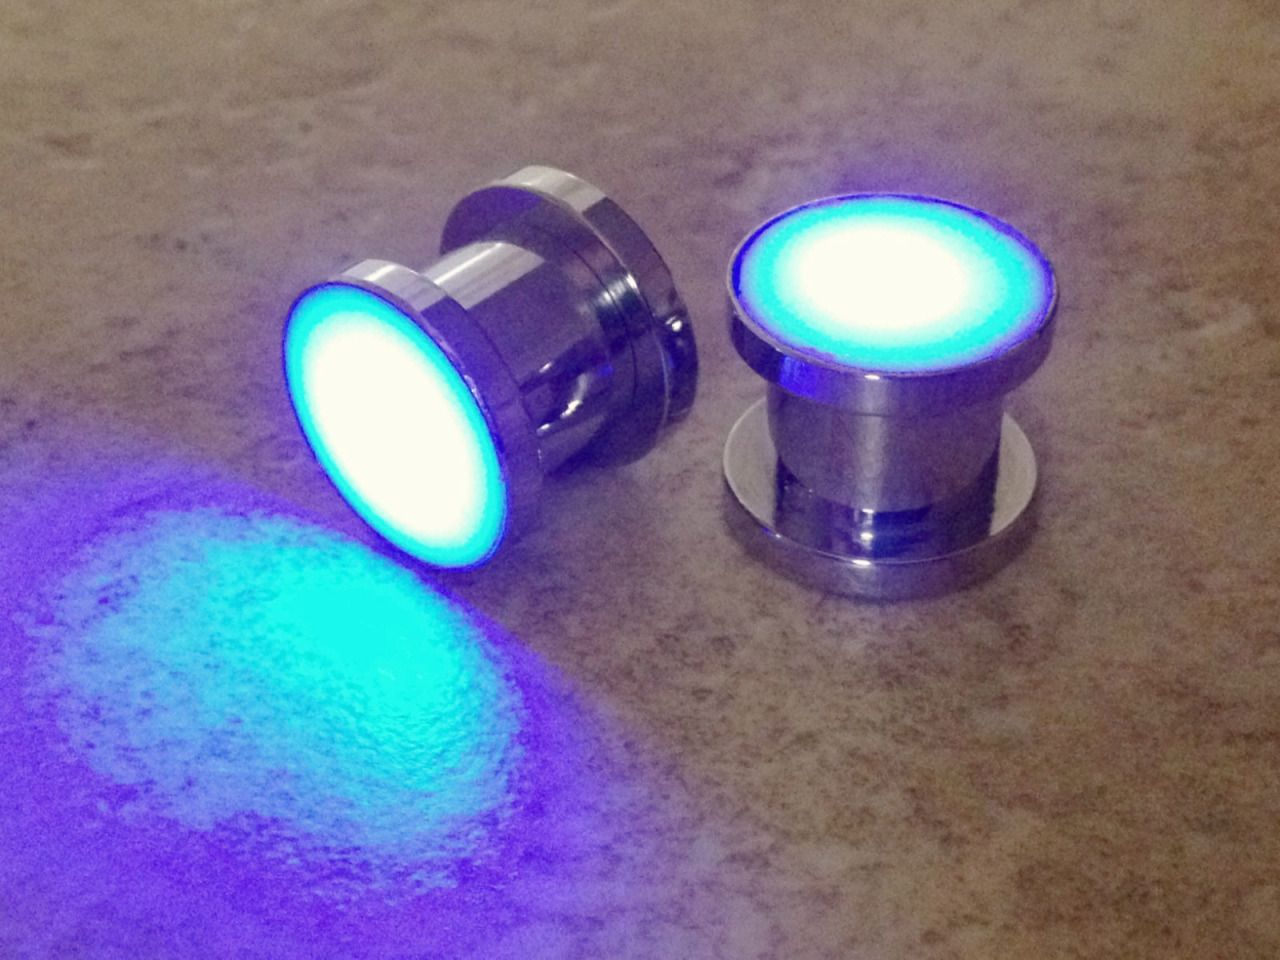 I just ordered these gauges. Hurr hurr they glow~ :D